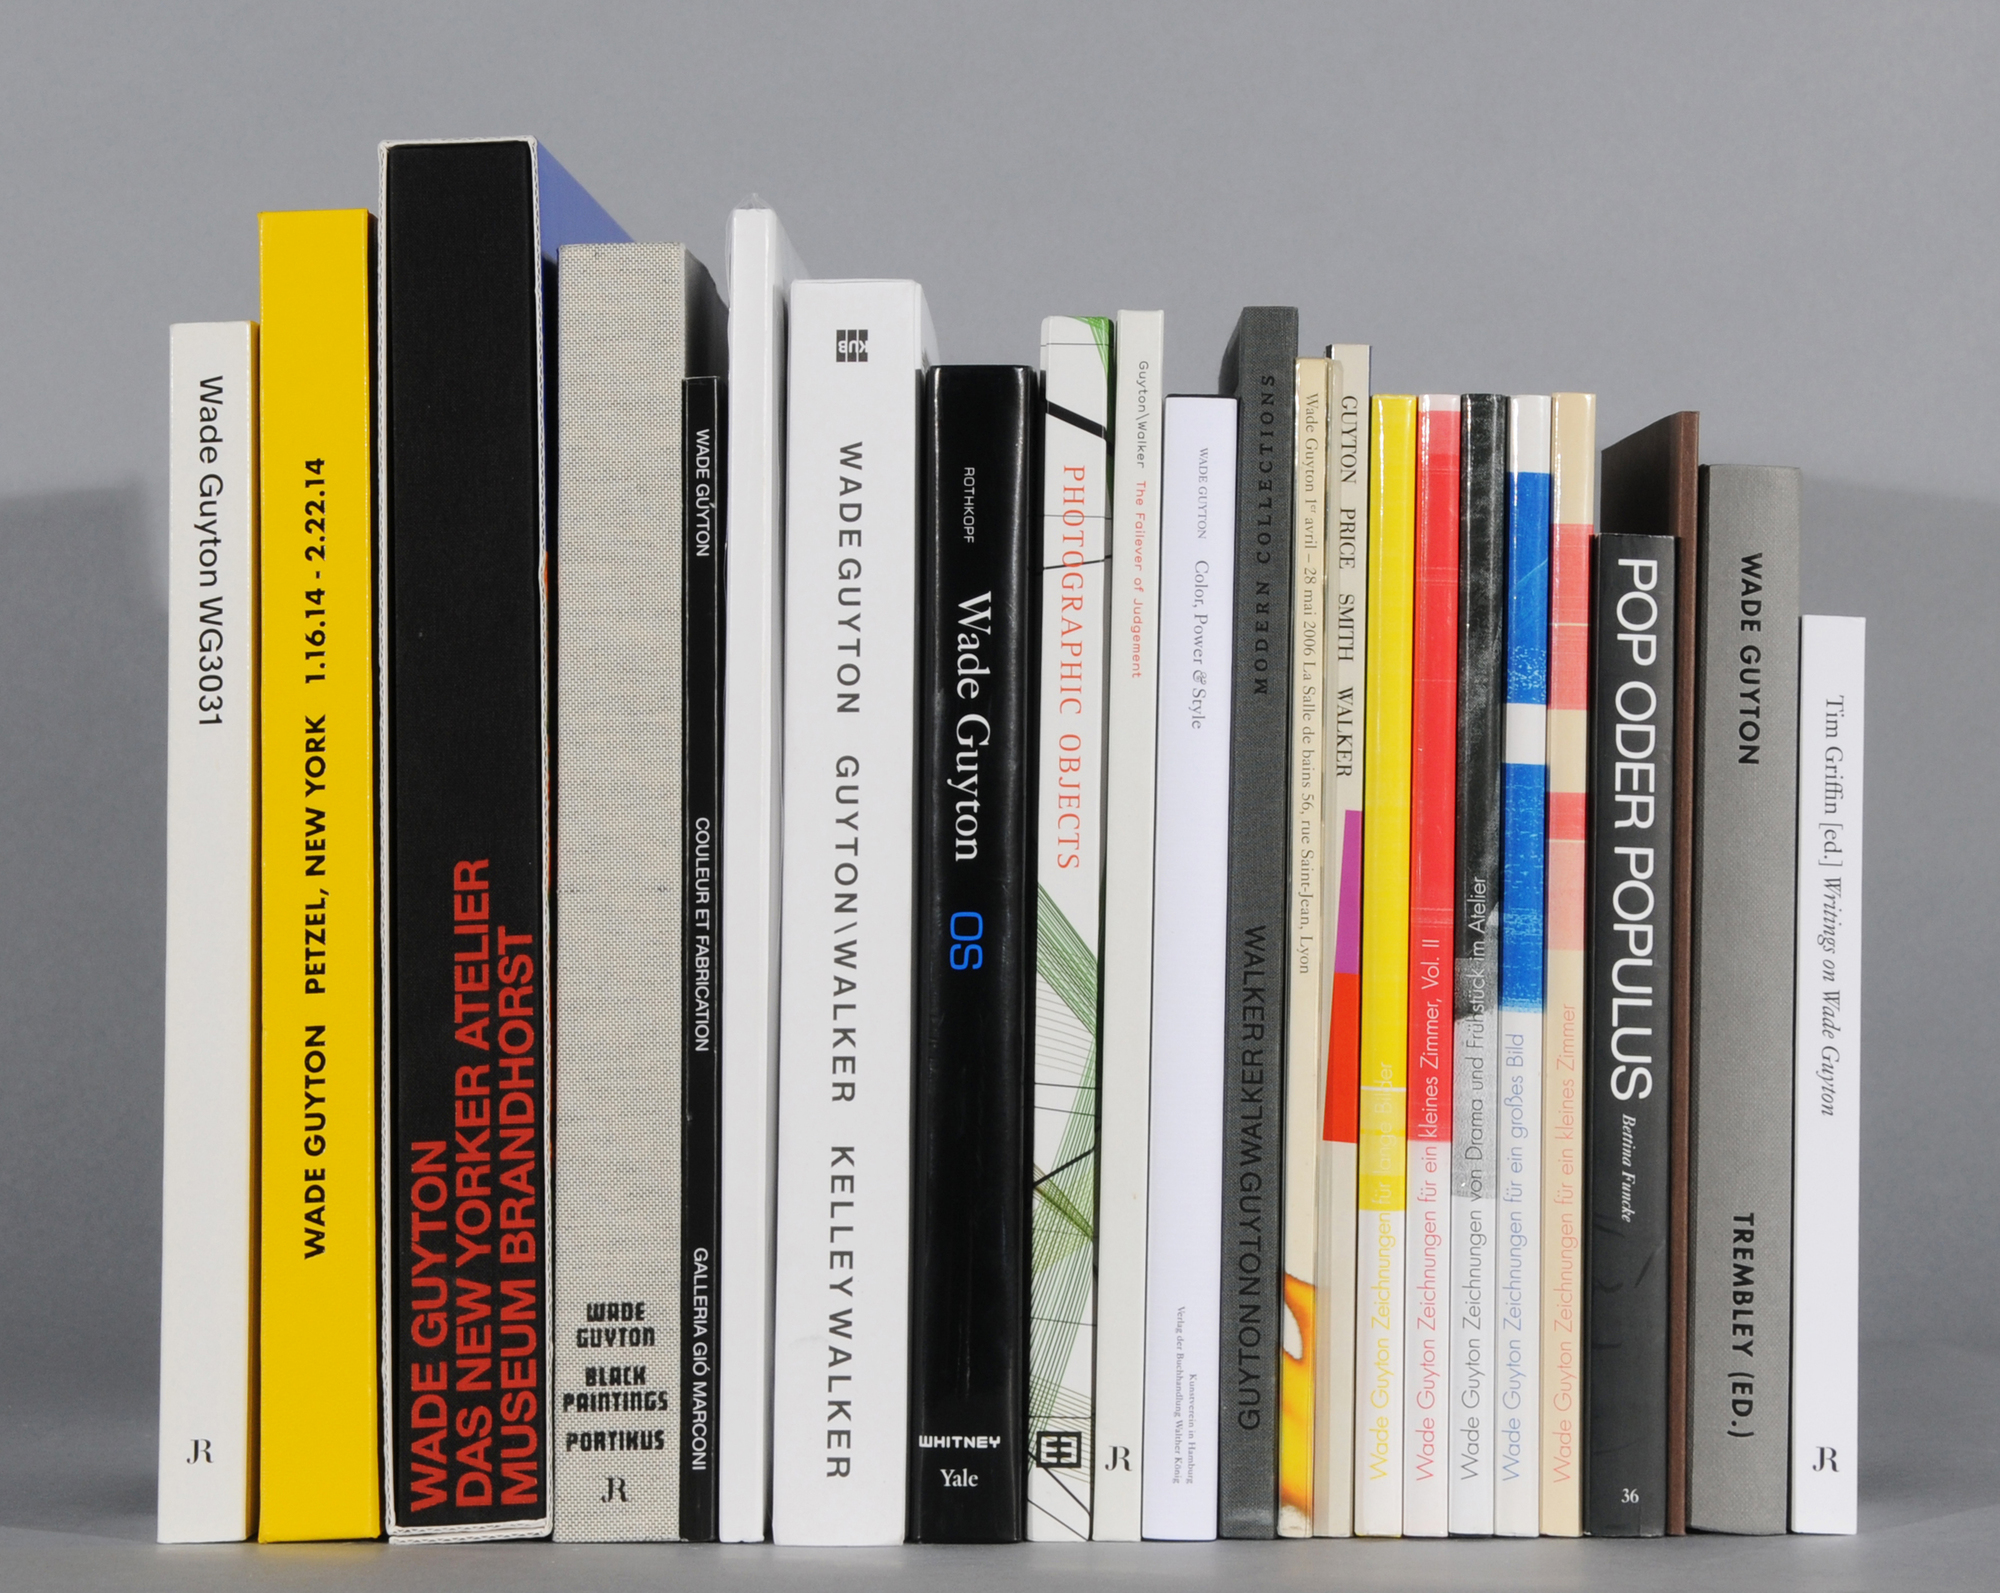 Guyton Wade, 23 Books and Exhibition Catalogues